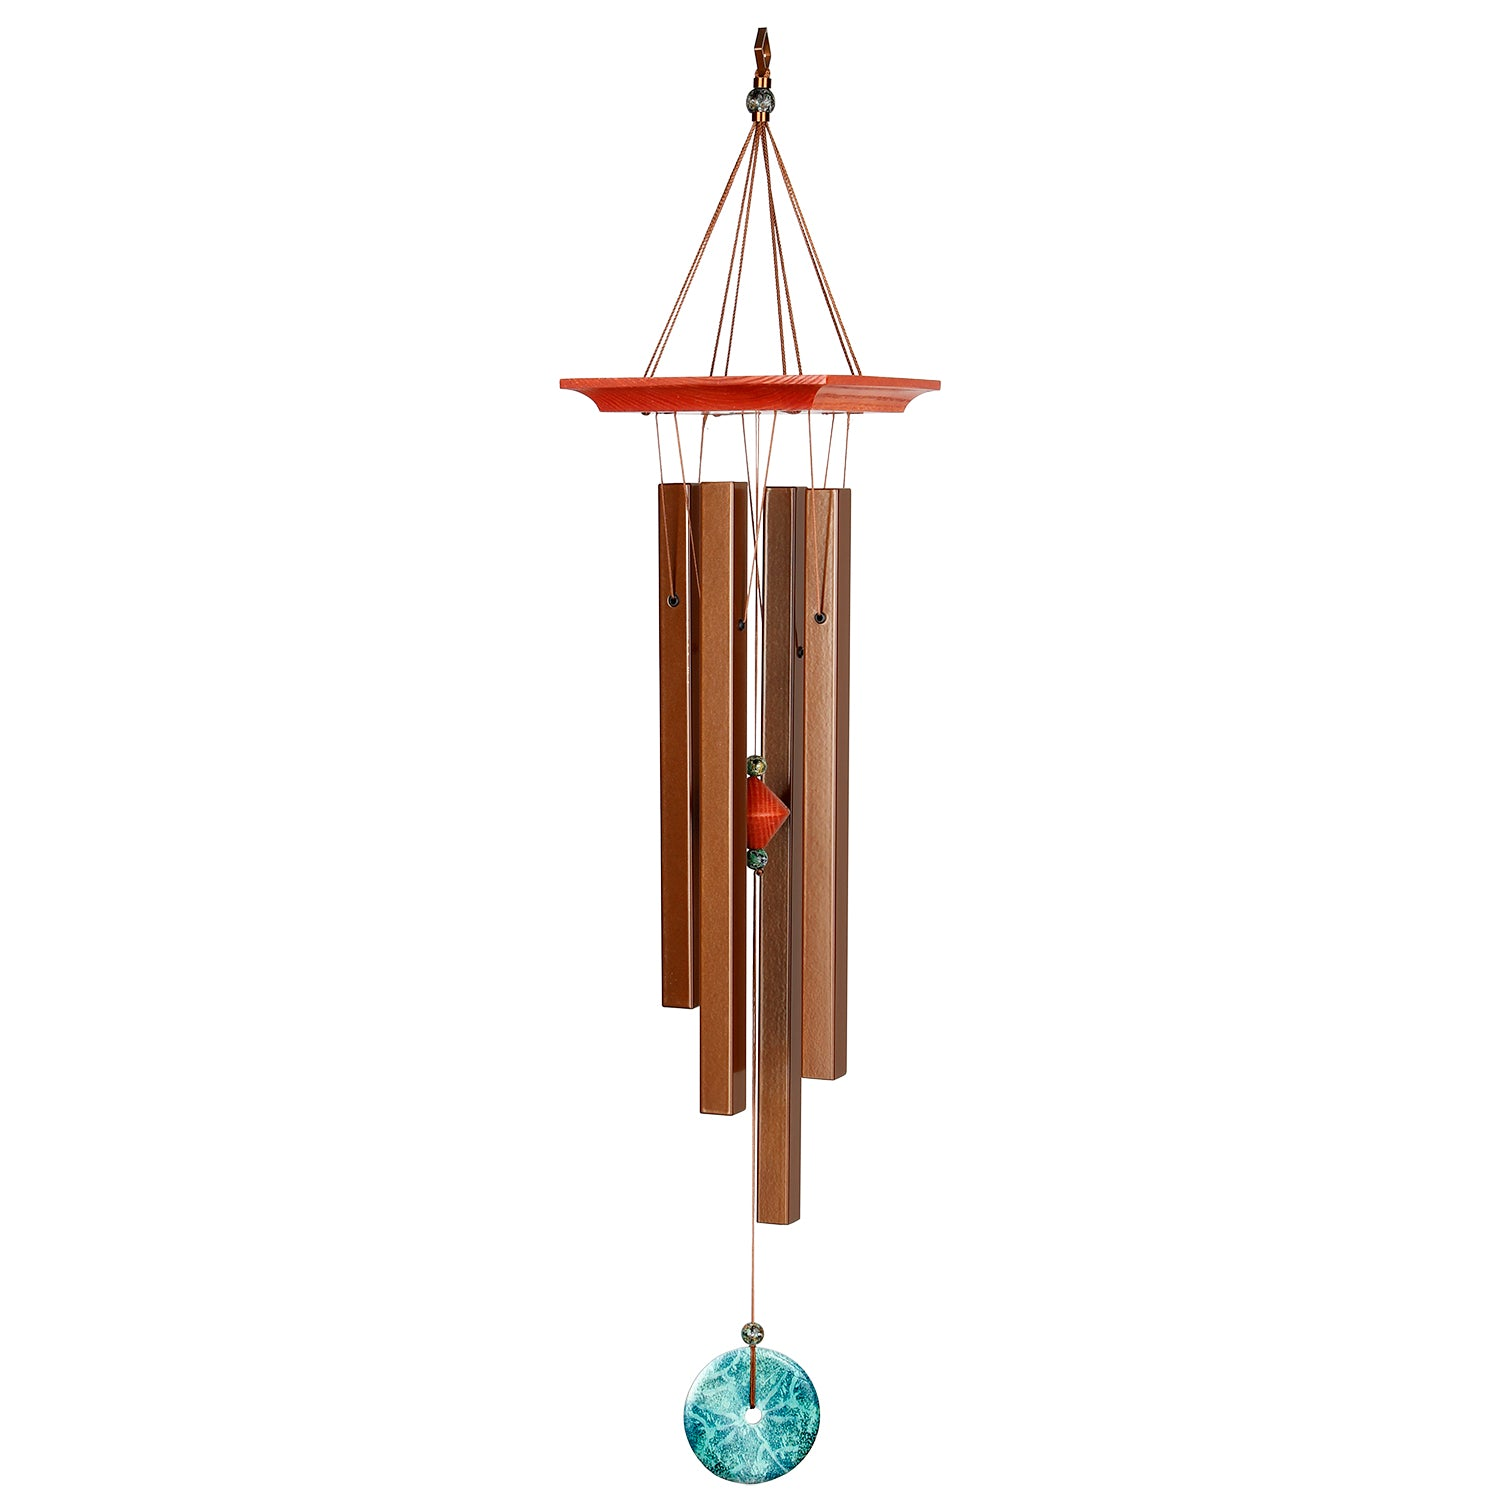 Turquoise Chime - Medium full product image